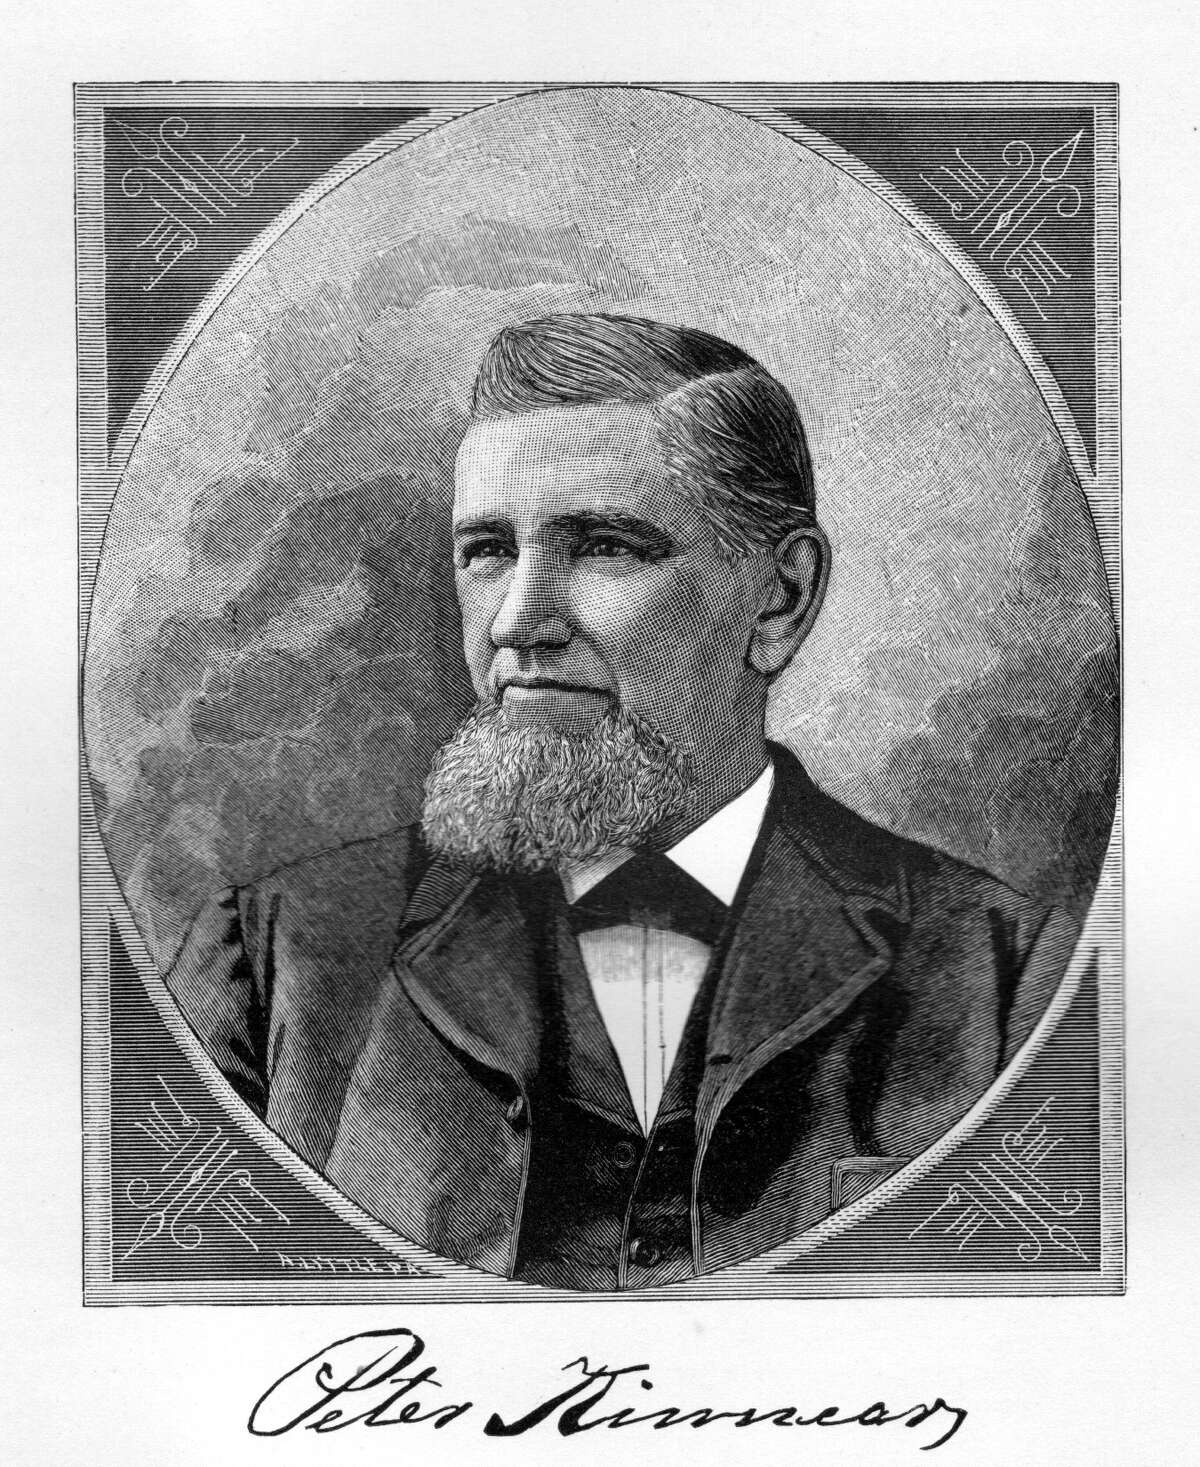 Peter Kinnear (Credit: History of Albany County, New York)